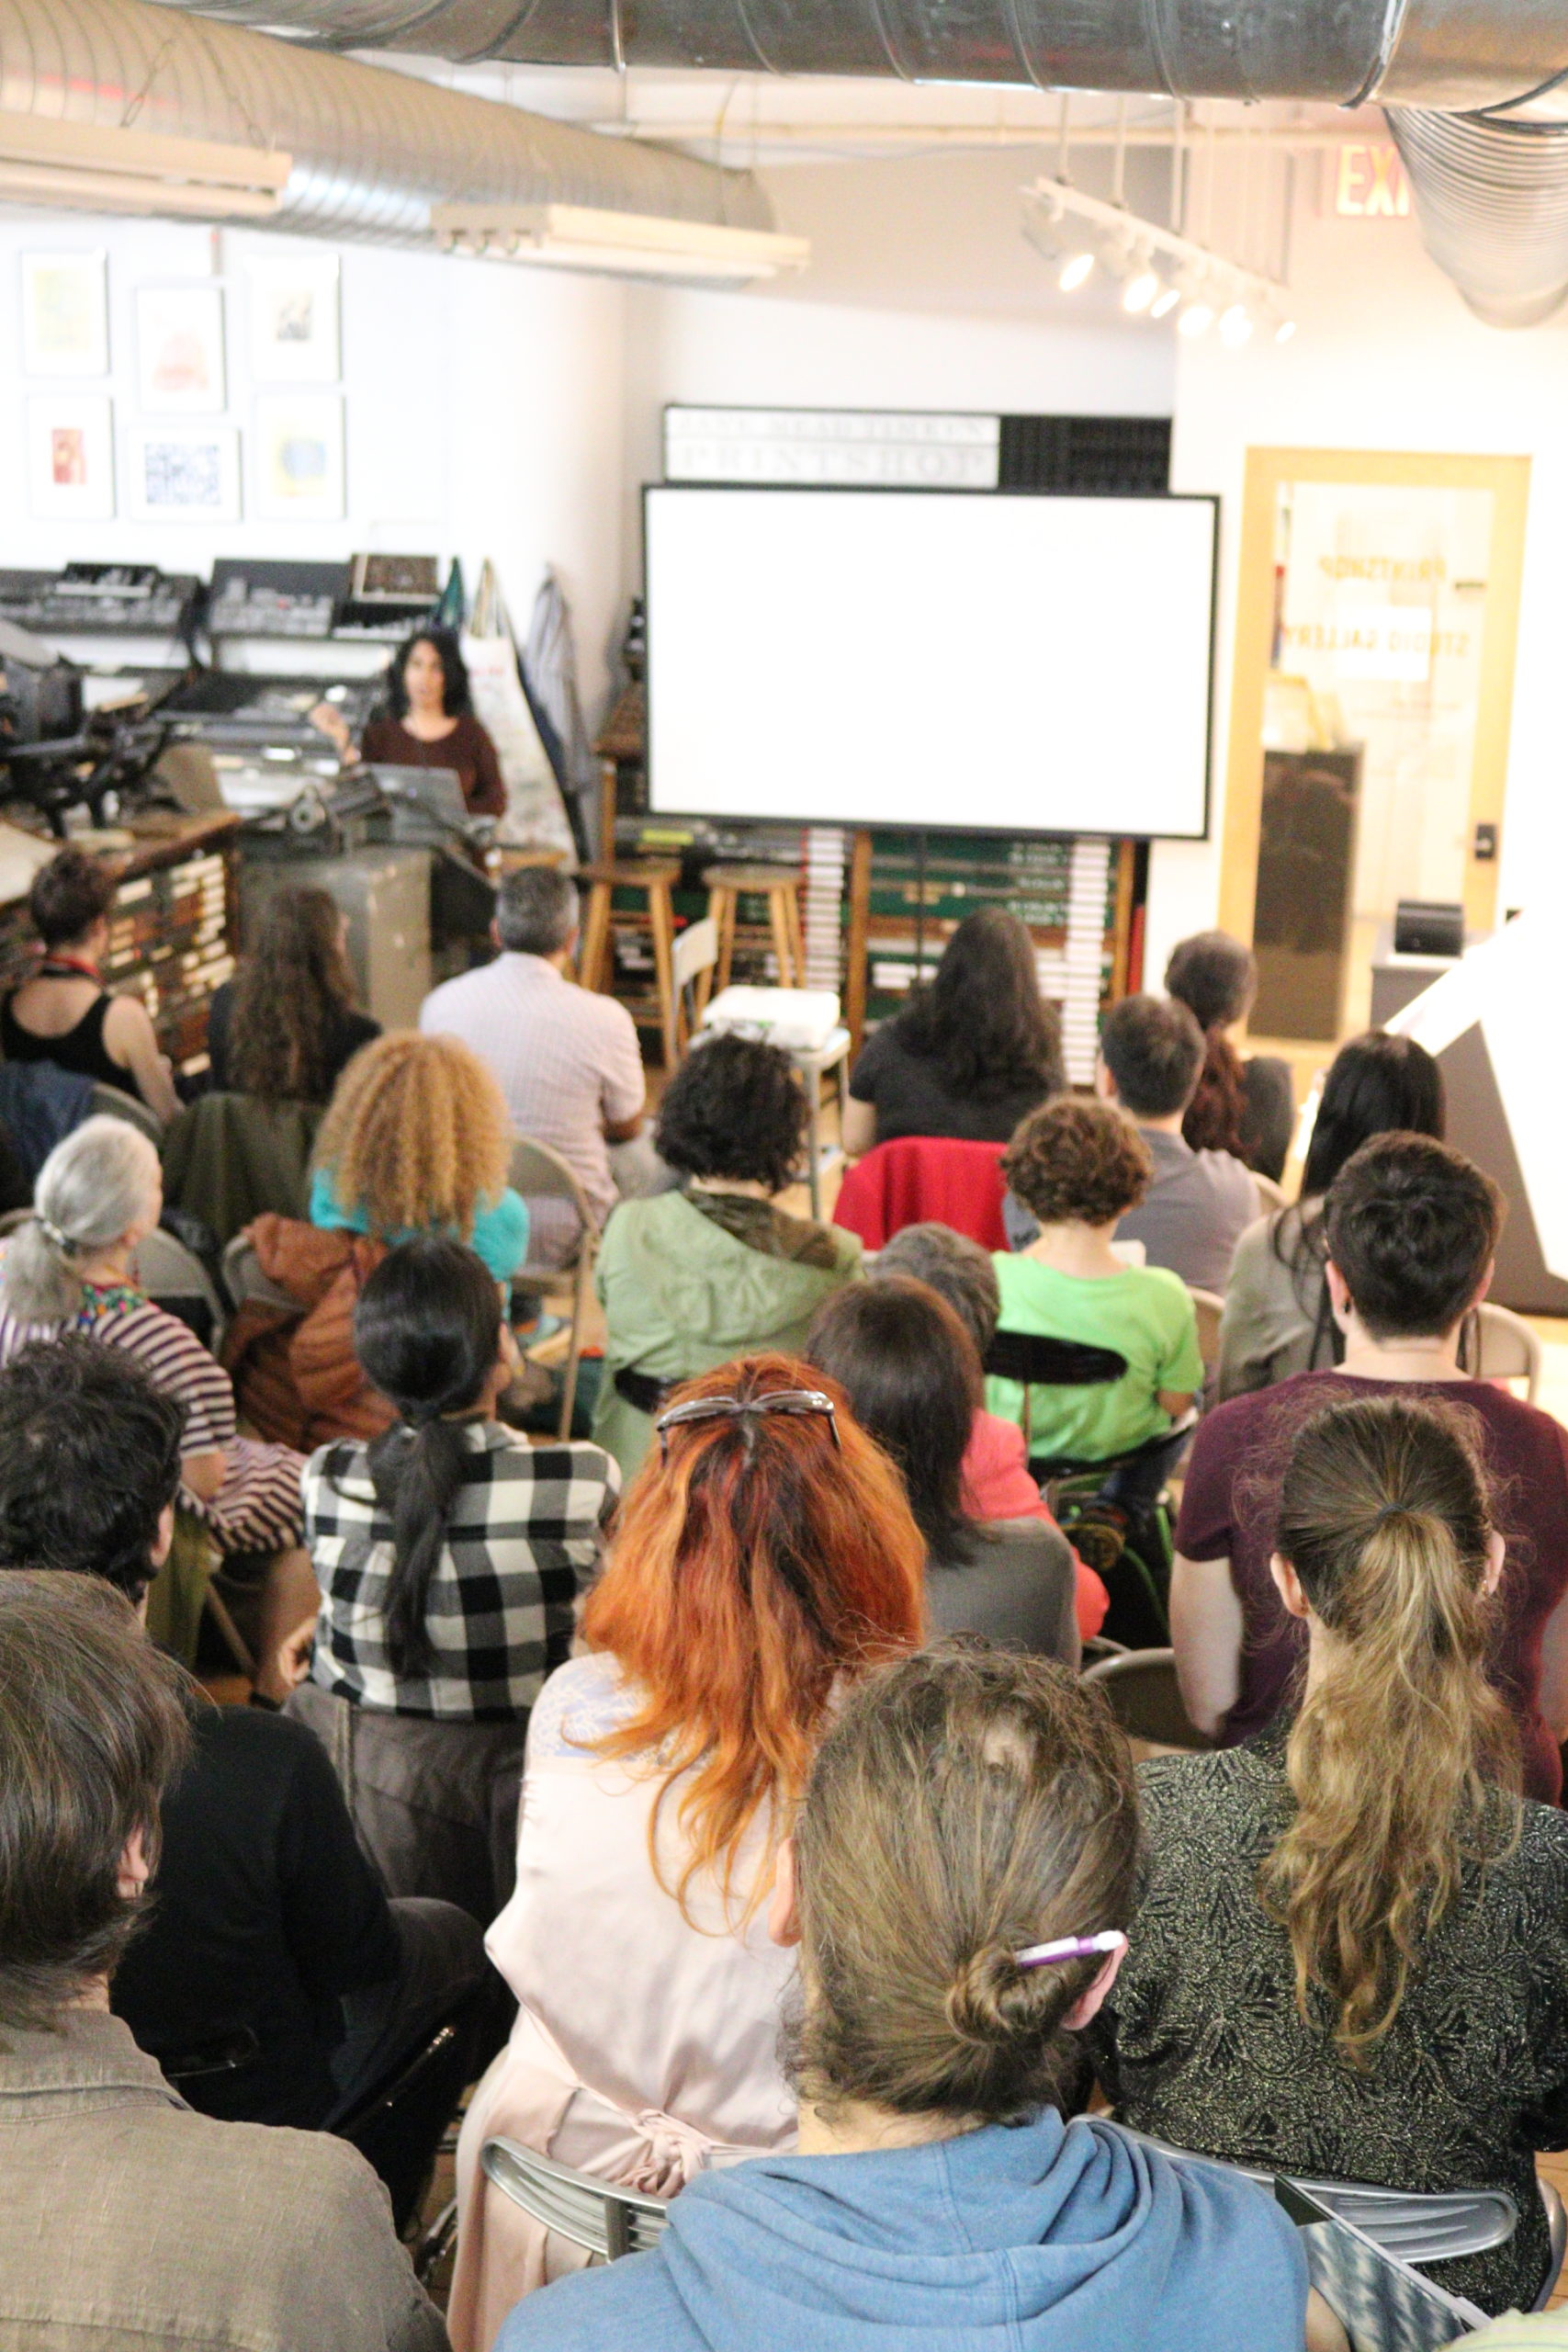 Shelly, a medium skin woman with wavy black hair speaks to a crowd of people in the cba printshop